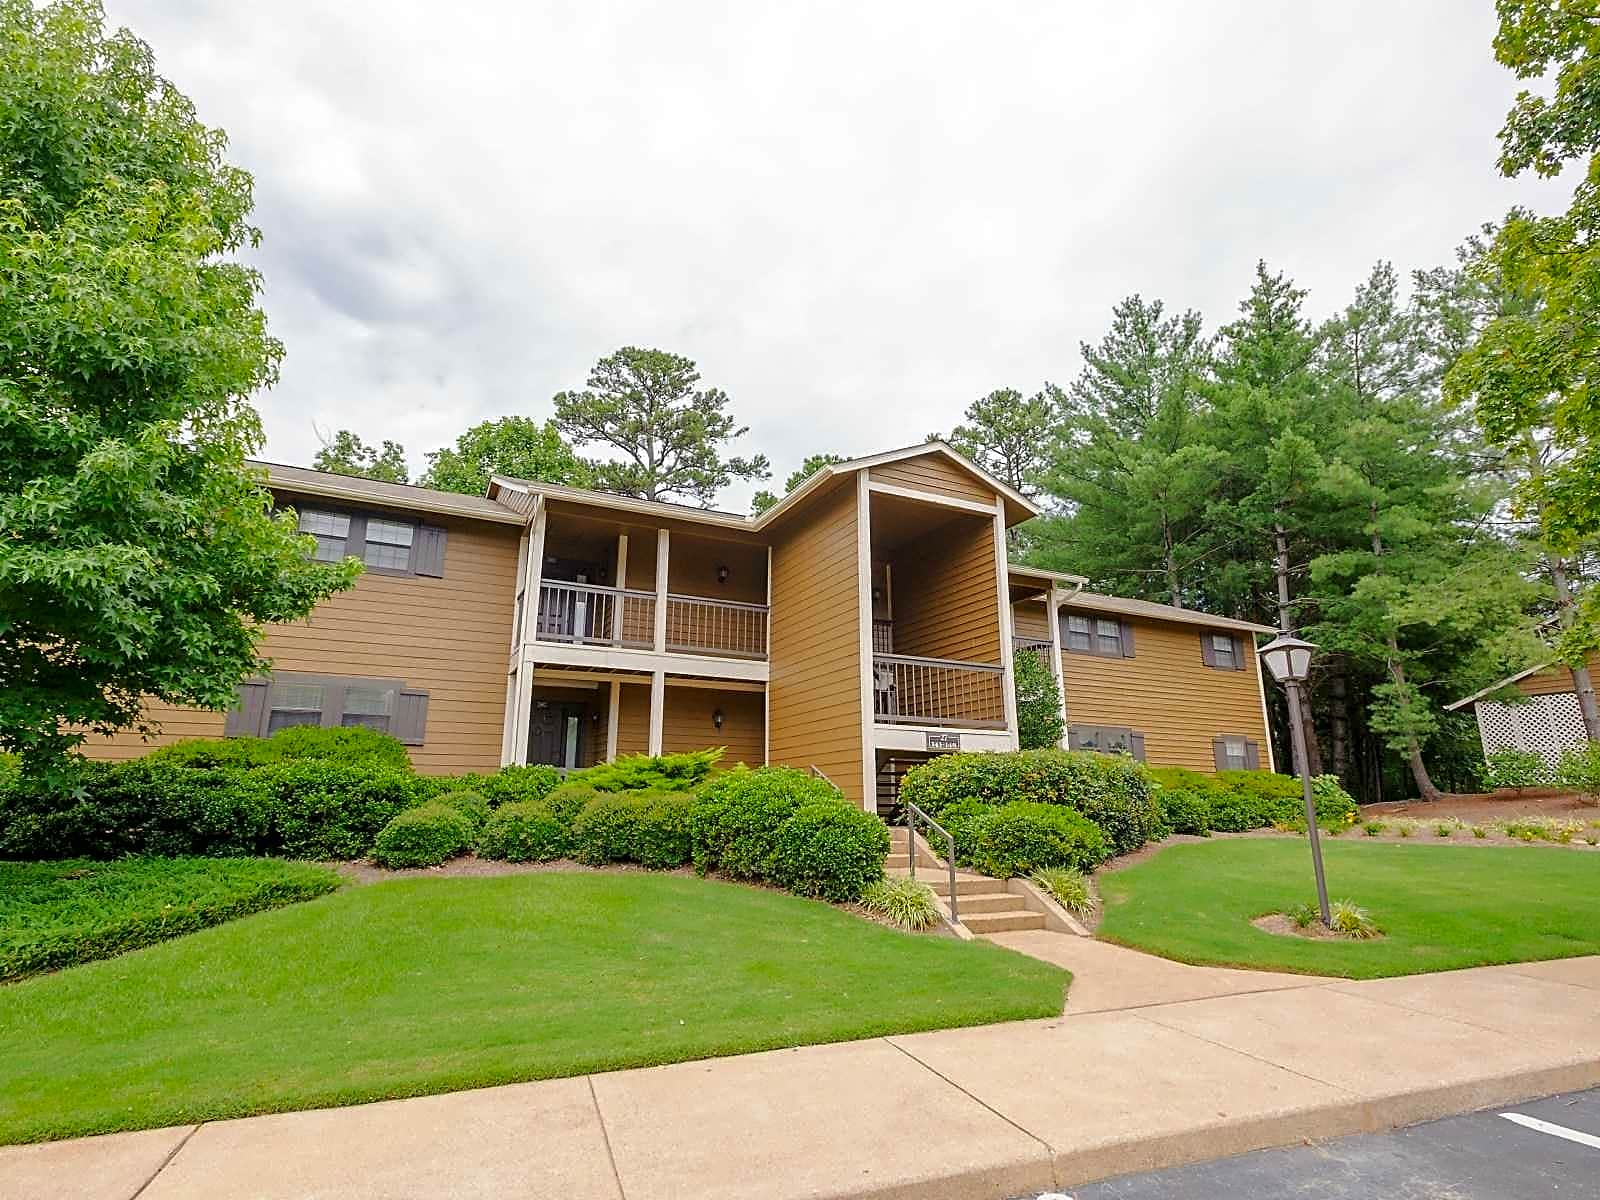 Photo: Chattanooga Apartment for Rent - $1285.00 / month; 3 Bd & 2 Ba